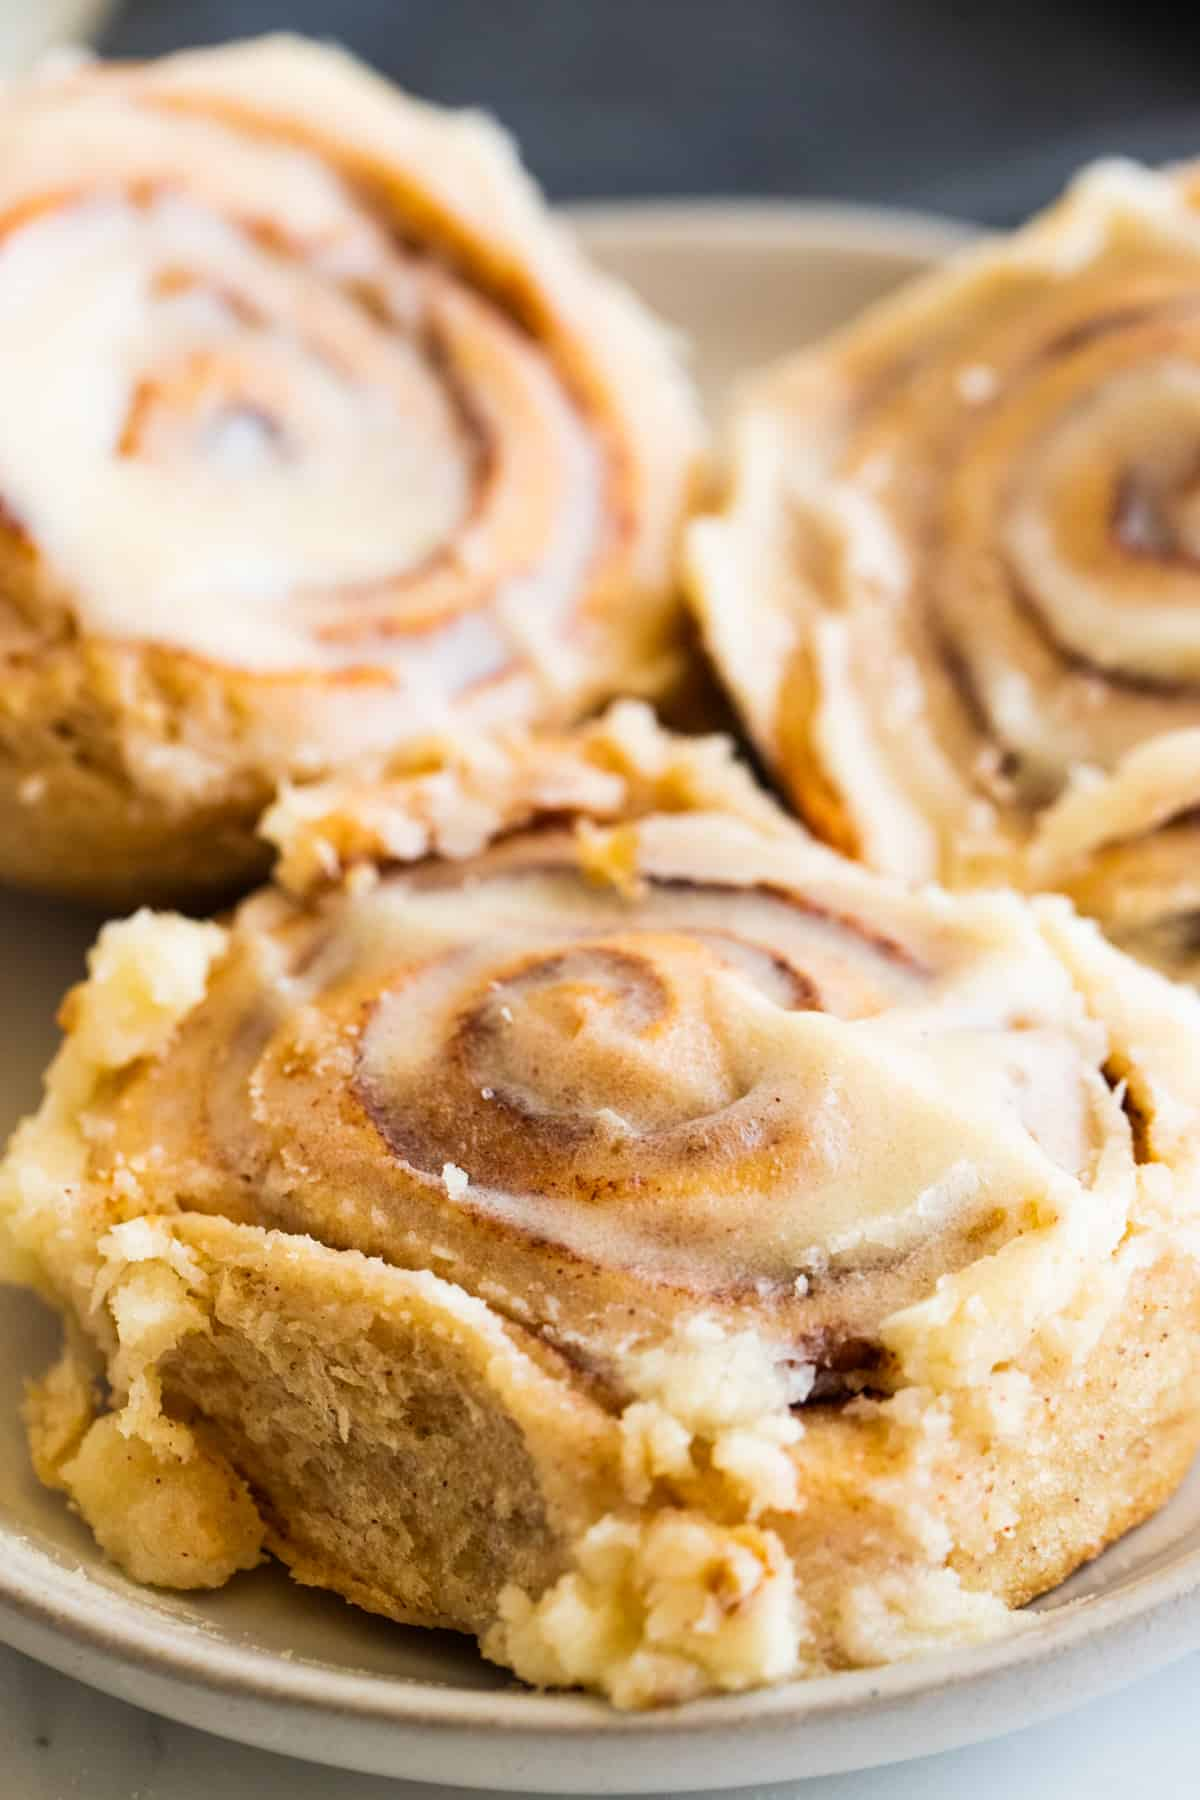 a close-up photo of three cinnamon rolls on a beige plate